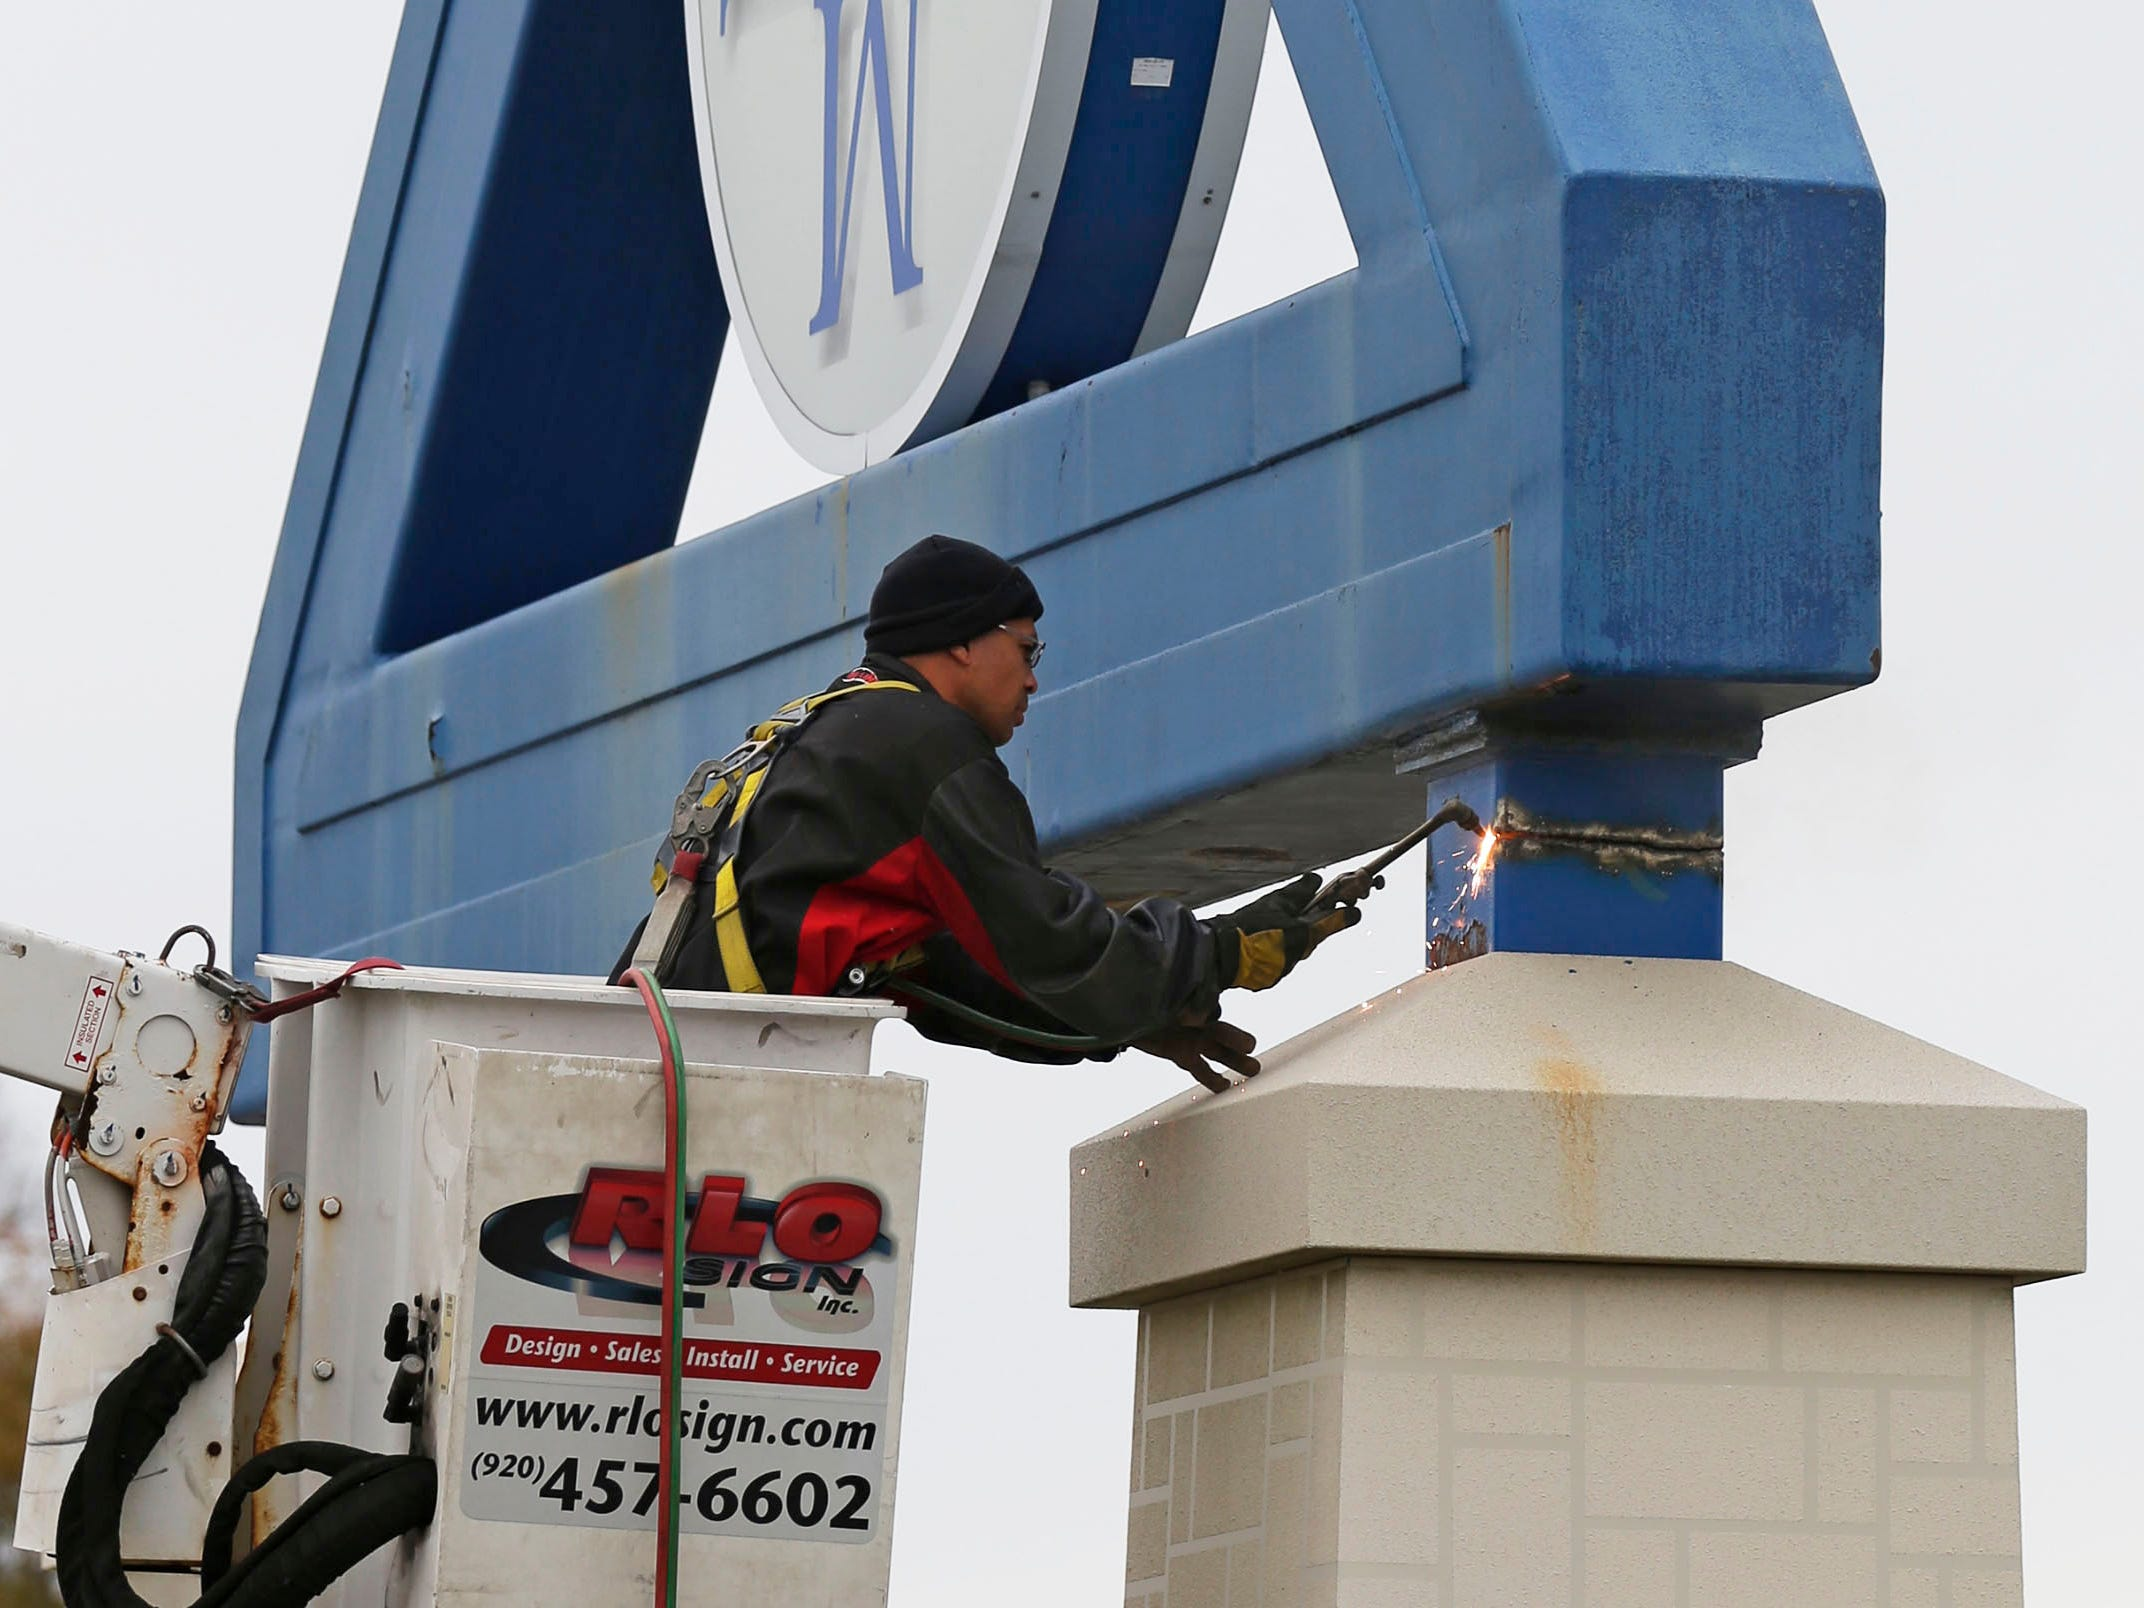 Sparks spatter as RLO Signs' Tom Peschong uses a cutting torch to dismantle the iconic Sheboygan Memorial Mall sign, Friday, October 26, 2018, in Sheboygan, Wis. A new sign by Meijers is replacing the iconic old sign.